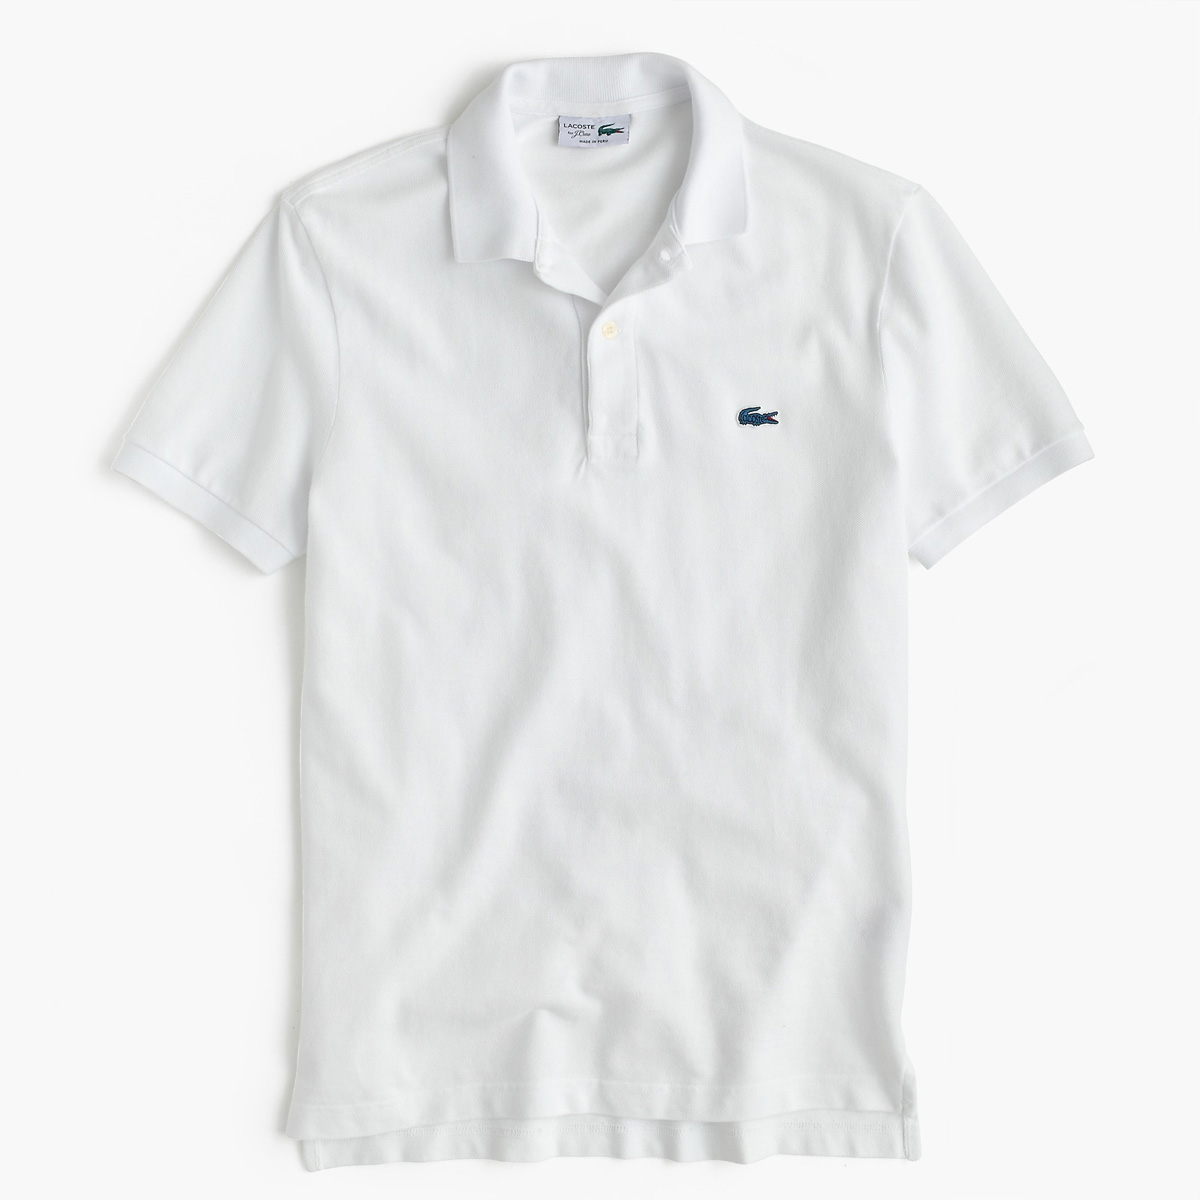 ao-polo-lacoste-slim-fit-172